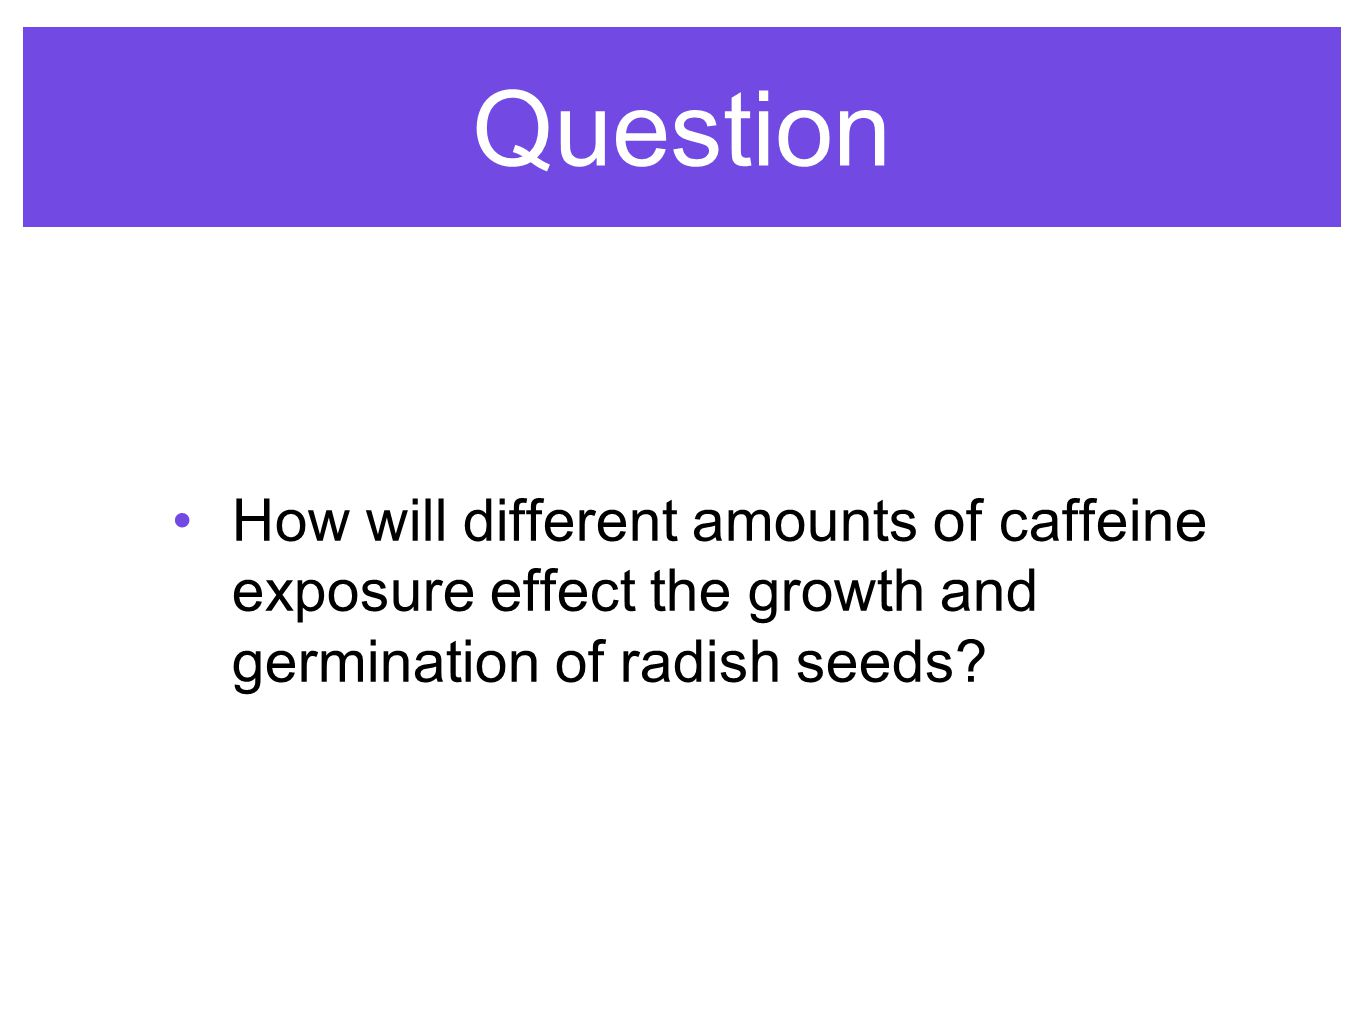 the effect of caffeine on plant The goal of this middle school science fair project is to examine the effect of caffeine on plant growth looking for great grade science projects for the classroom or for a science fair we love these teacher-tested ideas.